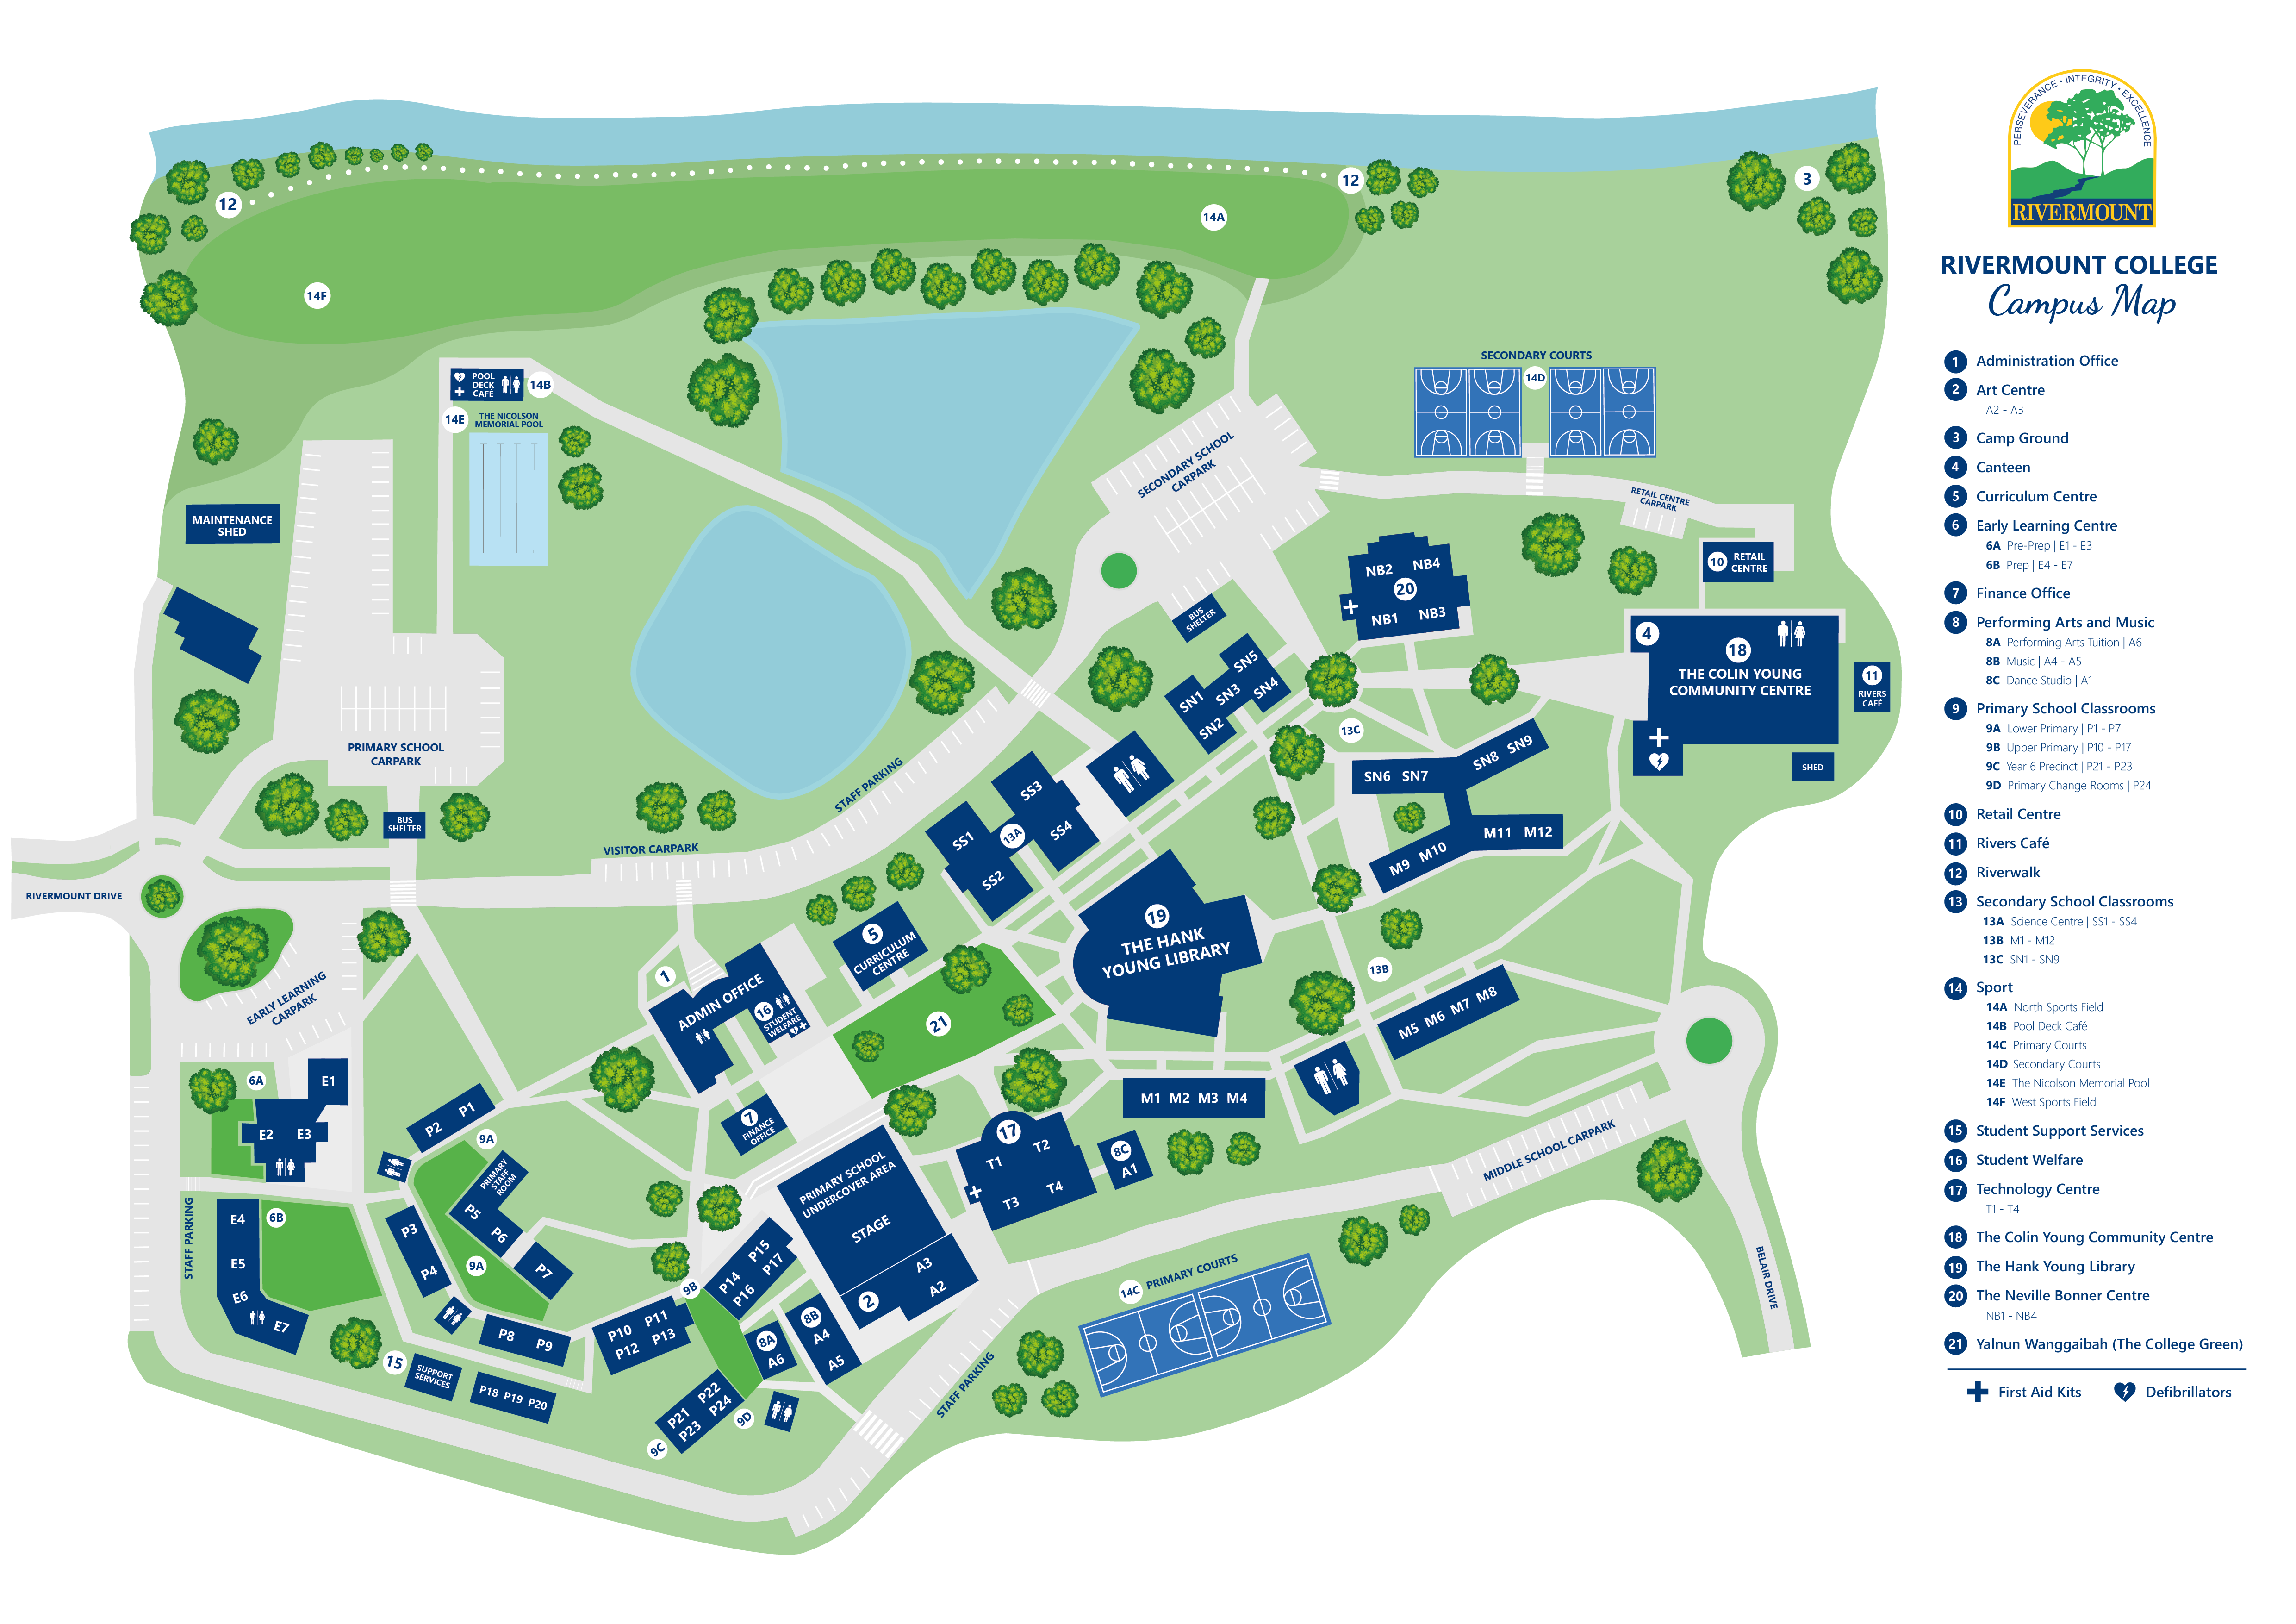 Rivermount-College-Map-2020-01.png?mtime=20200217102431#asset:3394